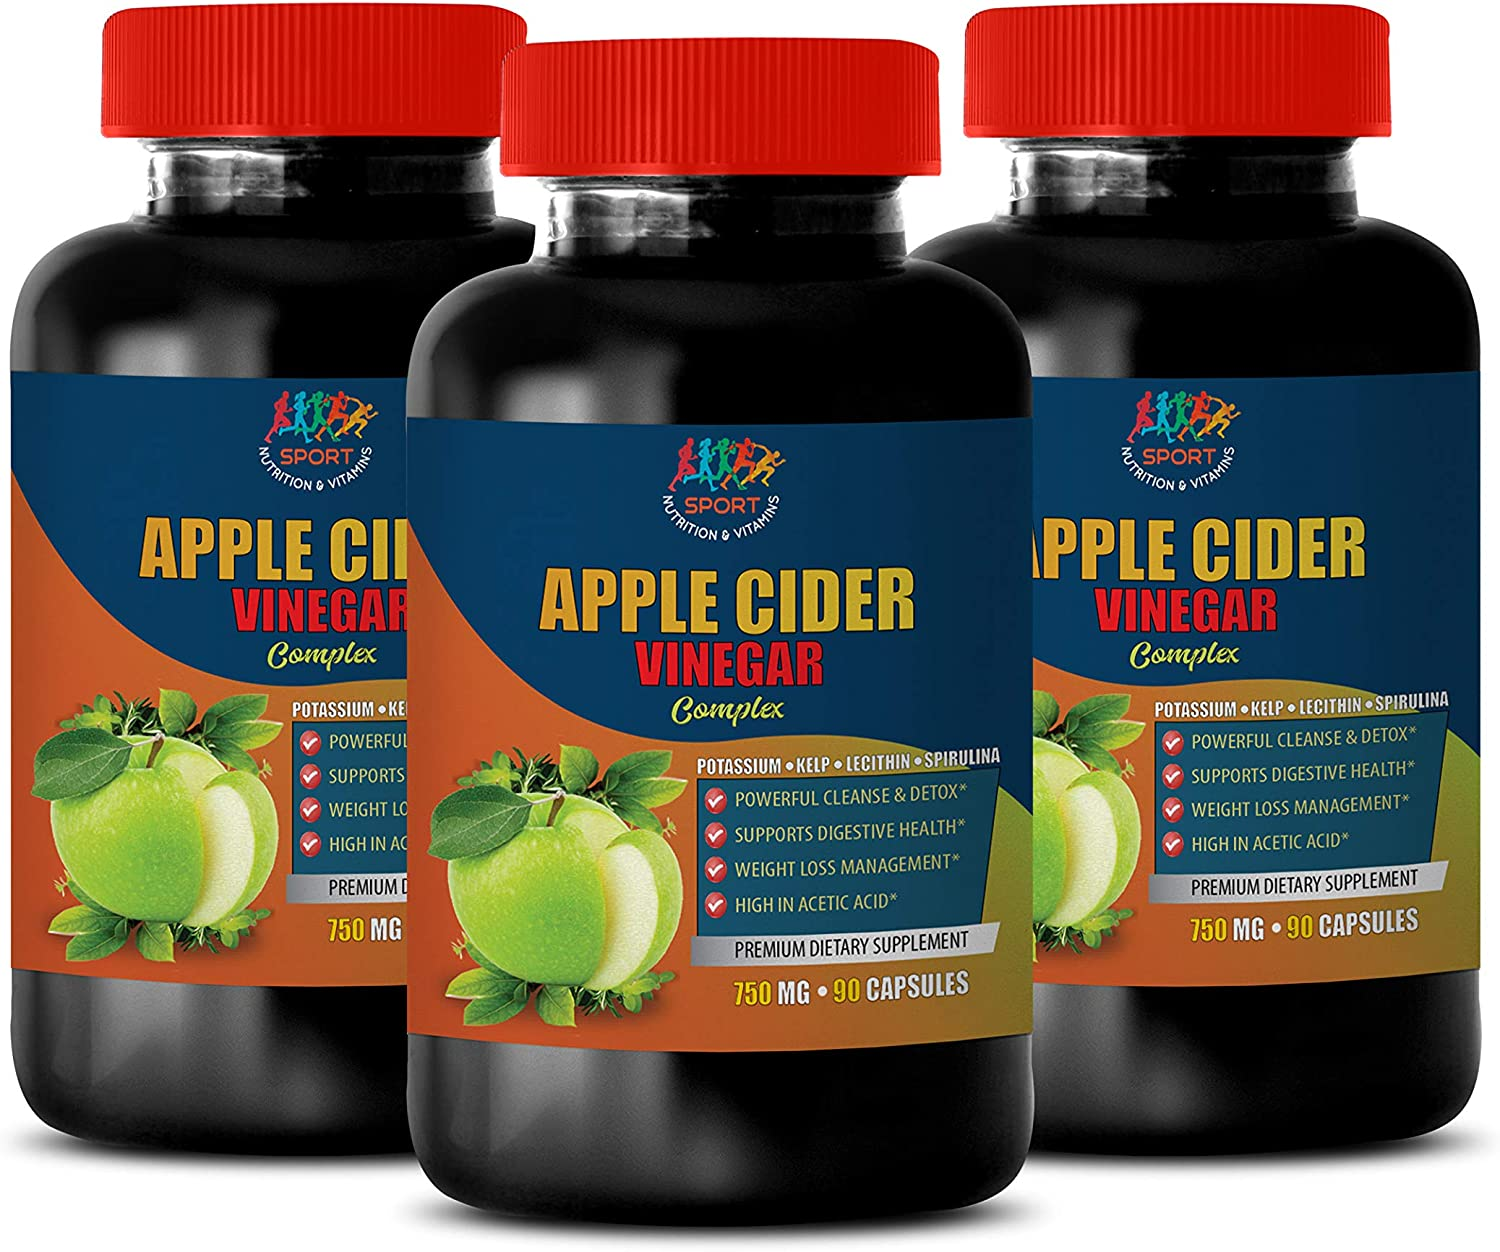 Digestive Support Supplements - Apple Cider Vinegar Complex 750 MG - Apple Cider Vinegar for Weight Loss - 3B (270 Capsules)